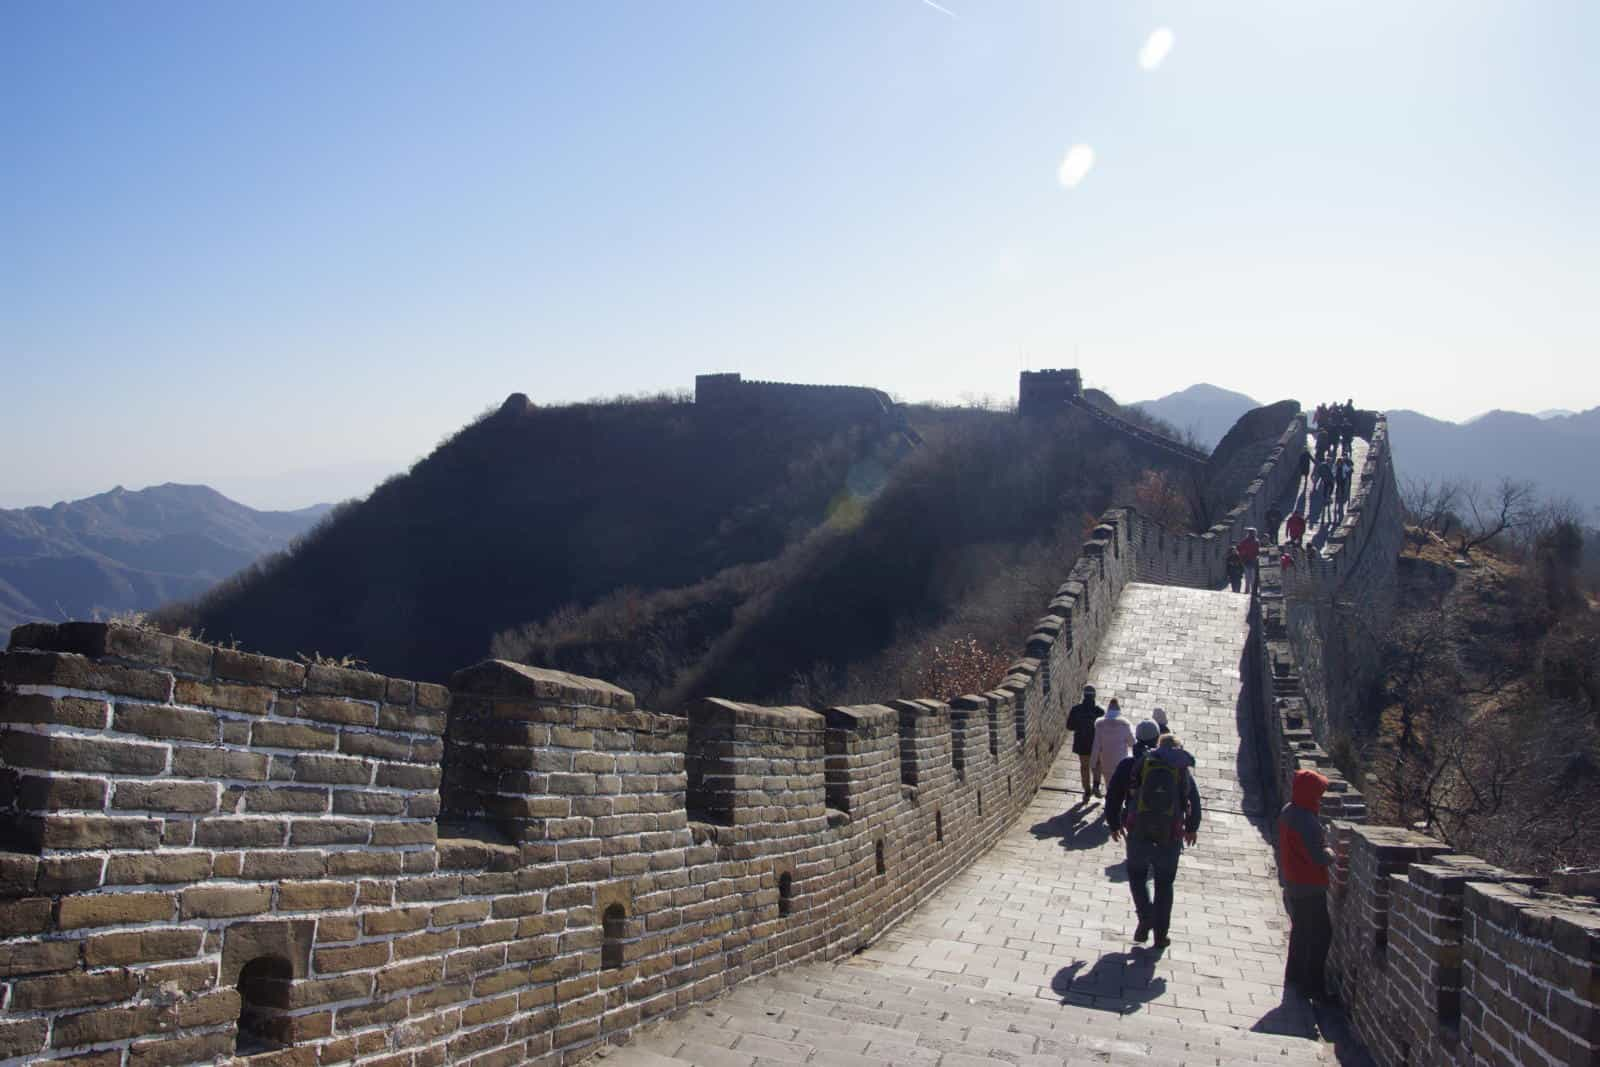 Carrier needed at the Great Wall